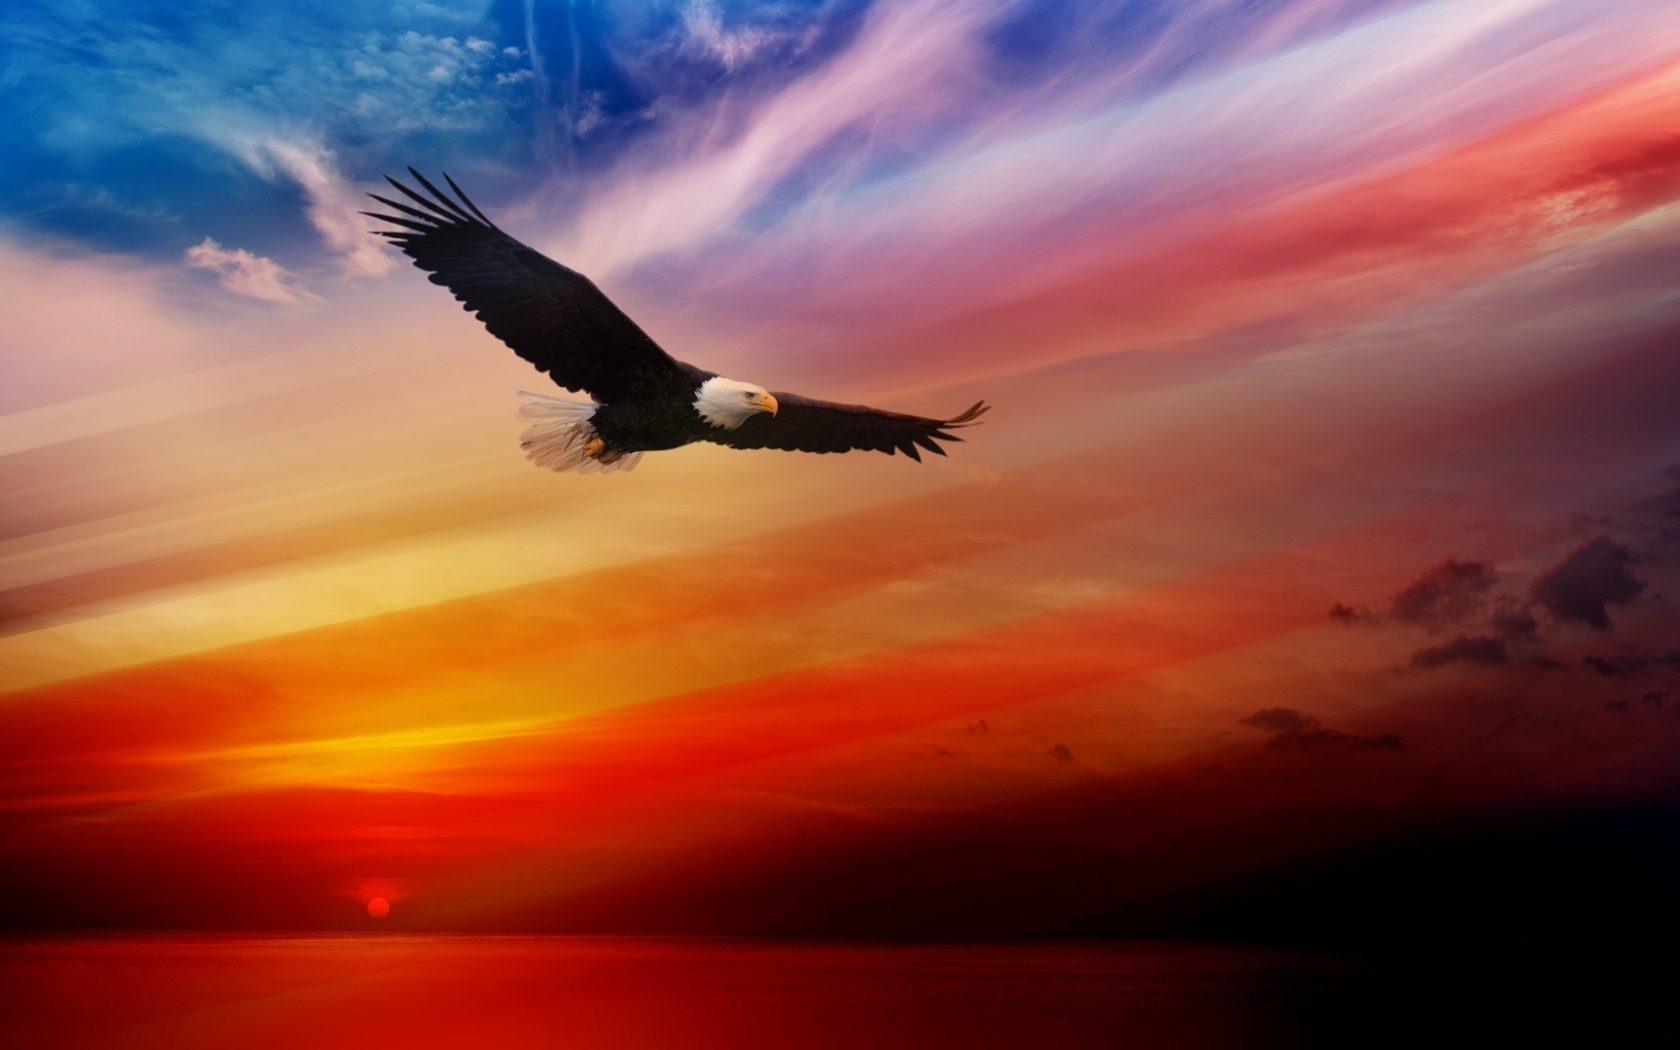 Flamingo Iphone Wallpaper Bald Eagle Flying At Sunset Red Sky Desktop Hd Wallpaper